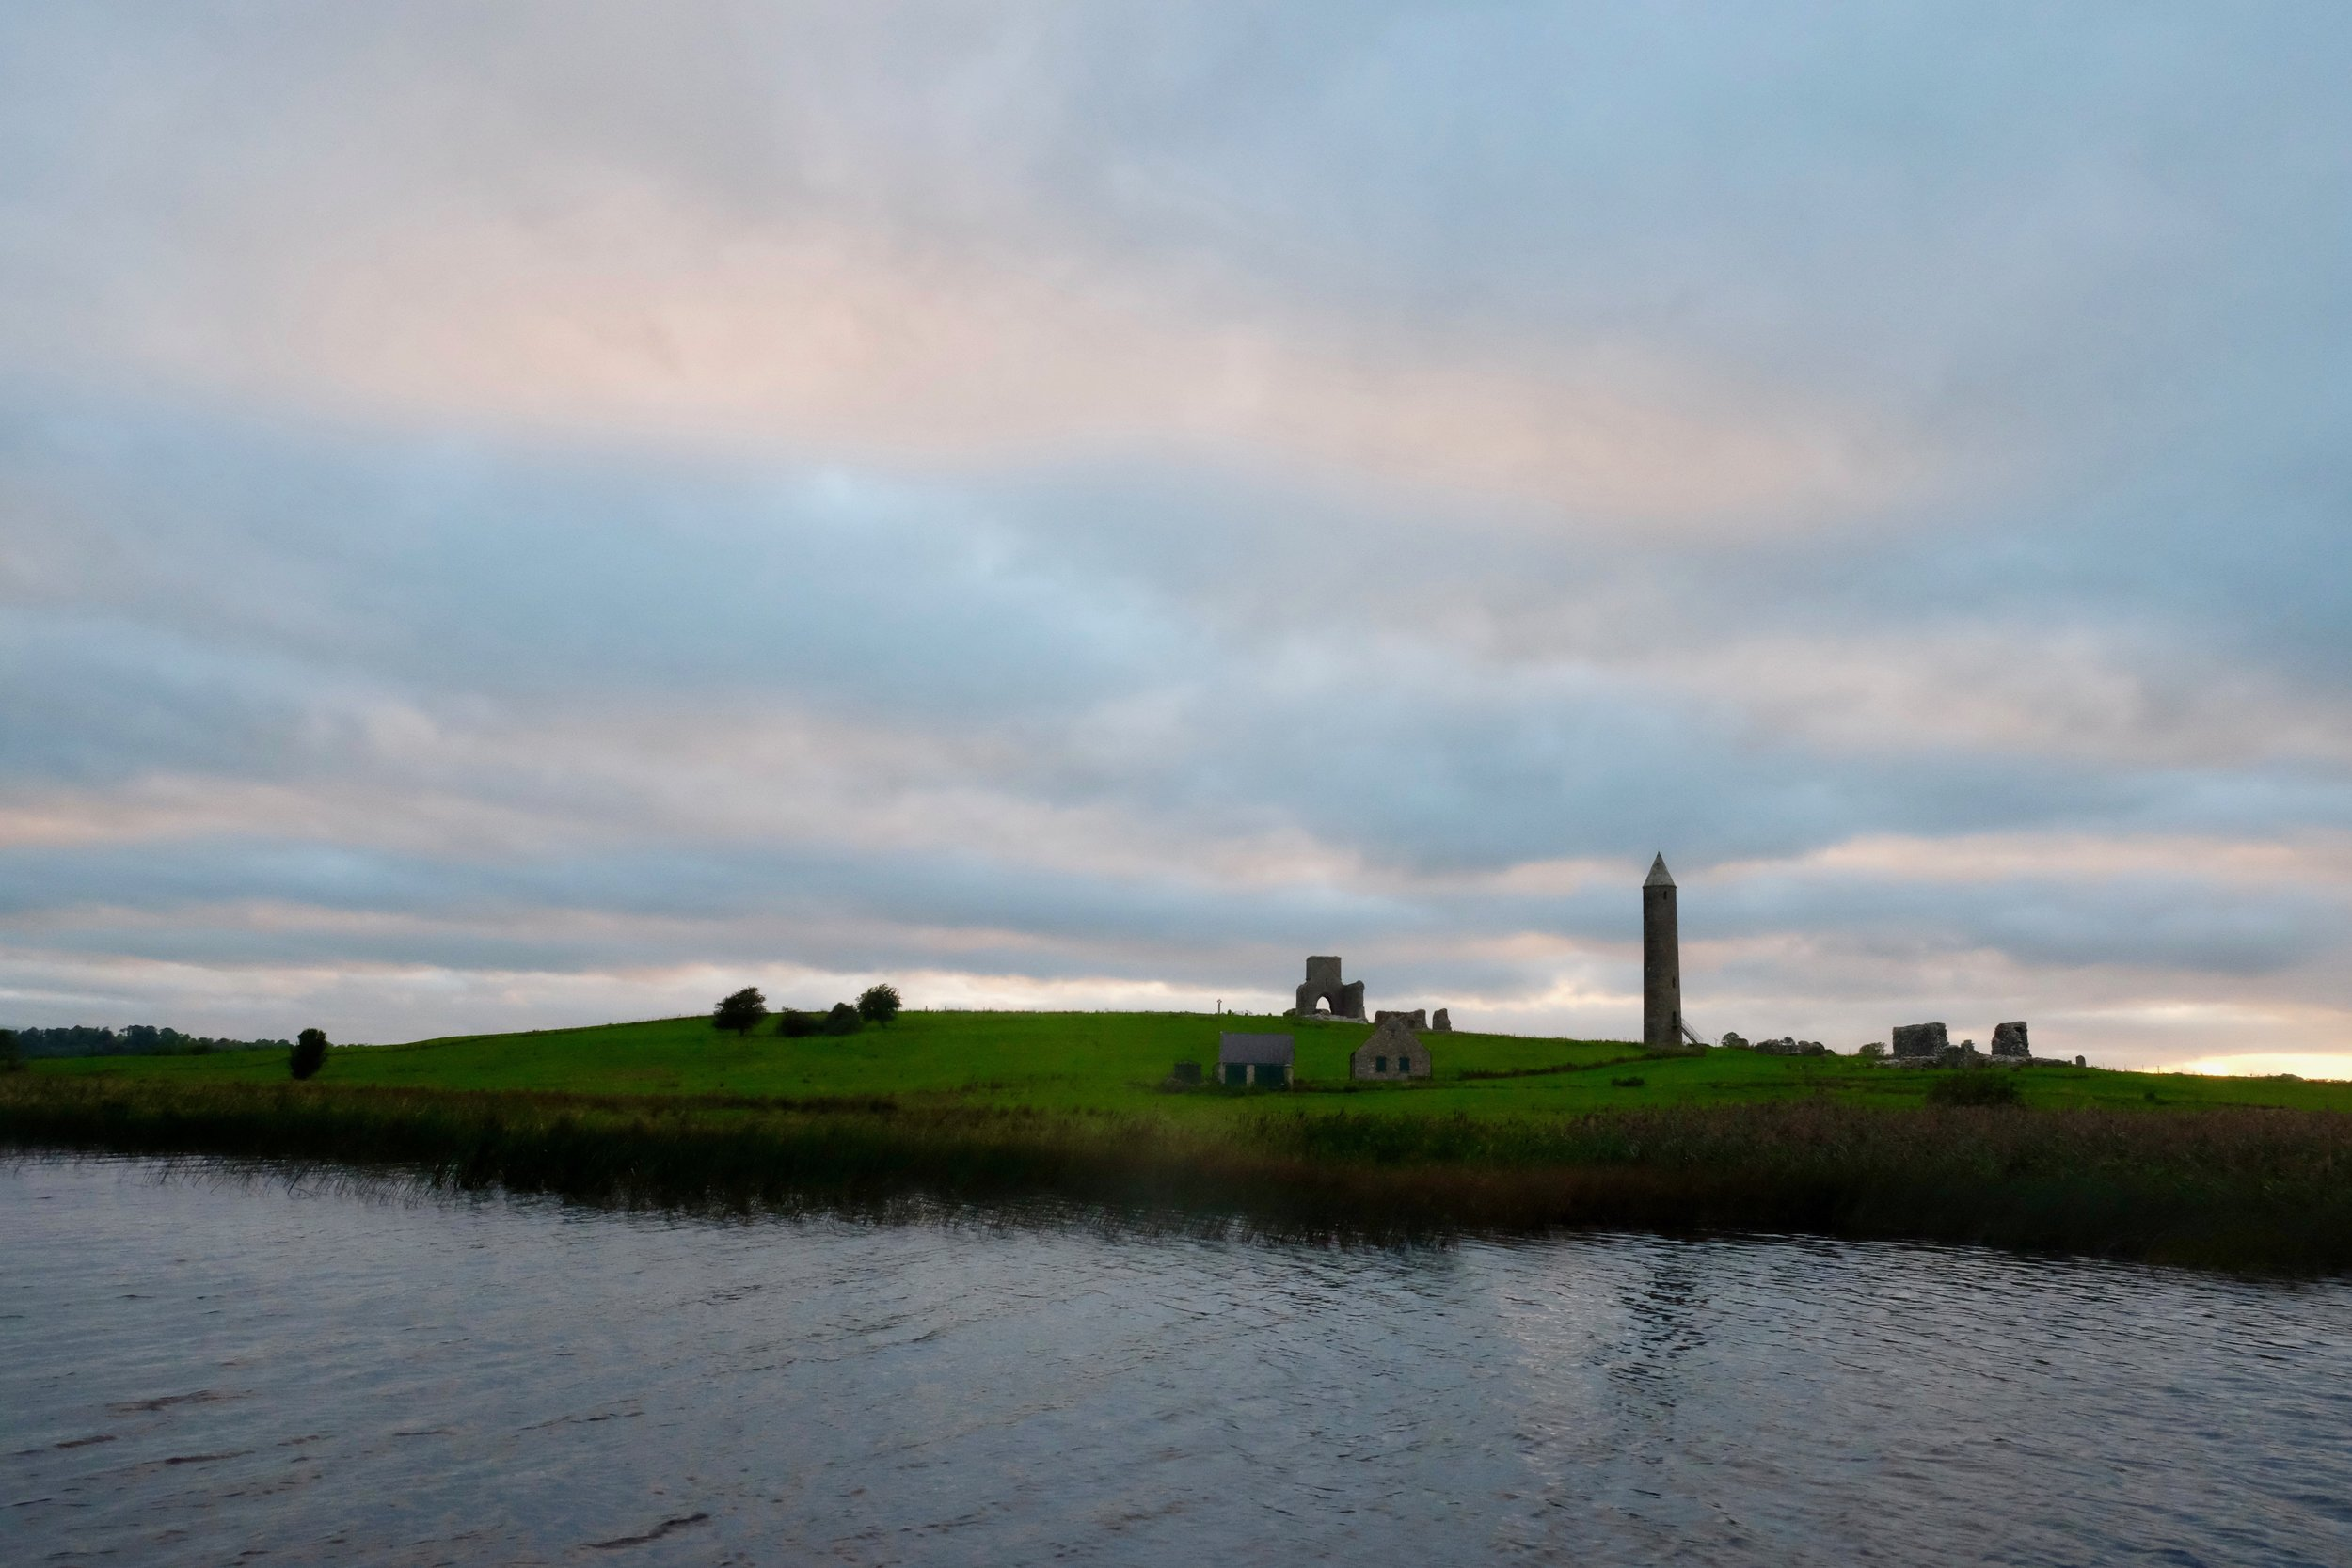 Devenish Island, home to a monastic settlement that was first erected in the sixth century. Now strewn with the ruins of those original buildings, it's a beautiful sight as the sun goes down.